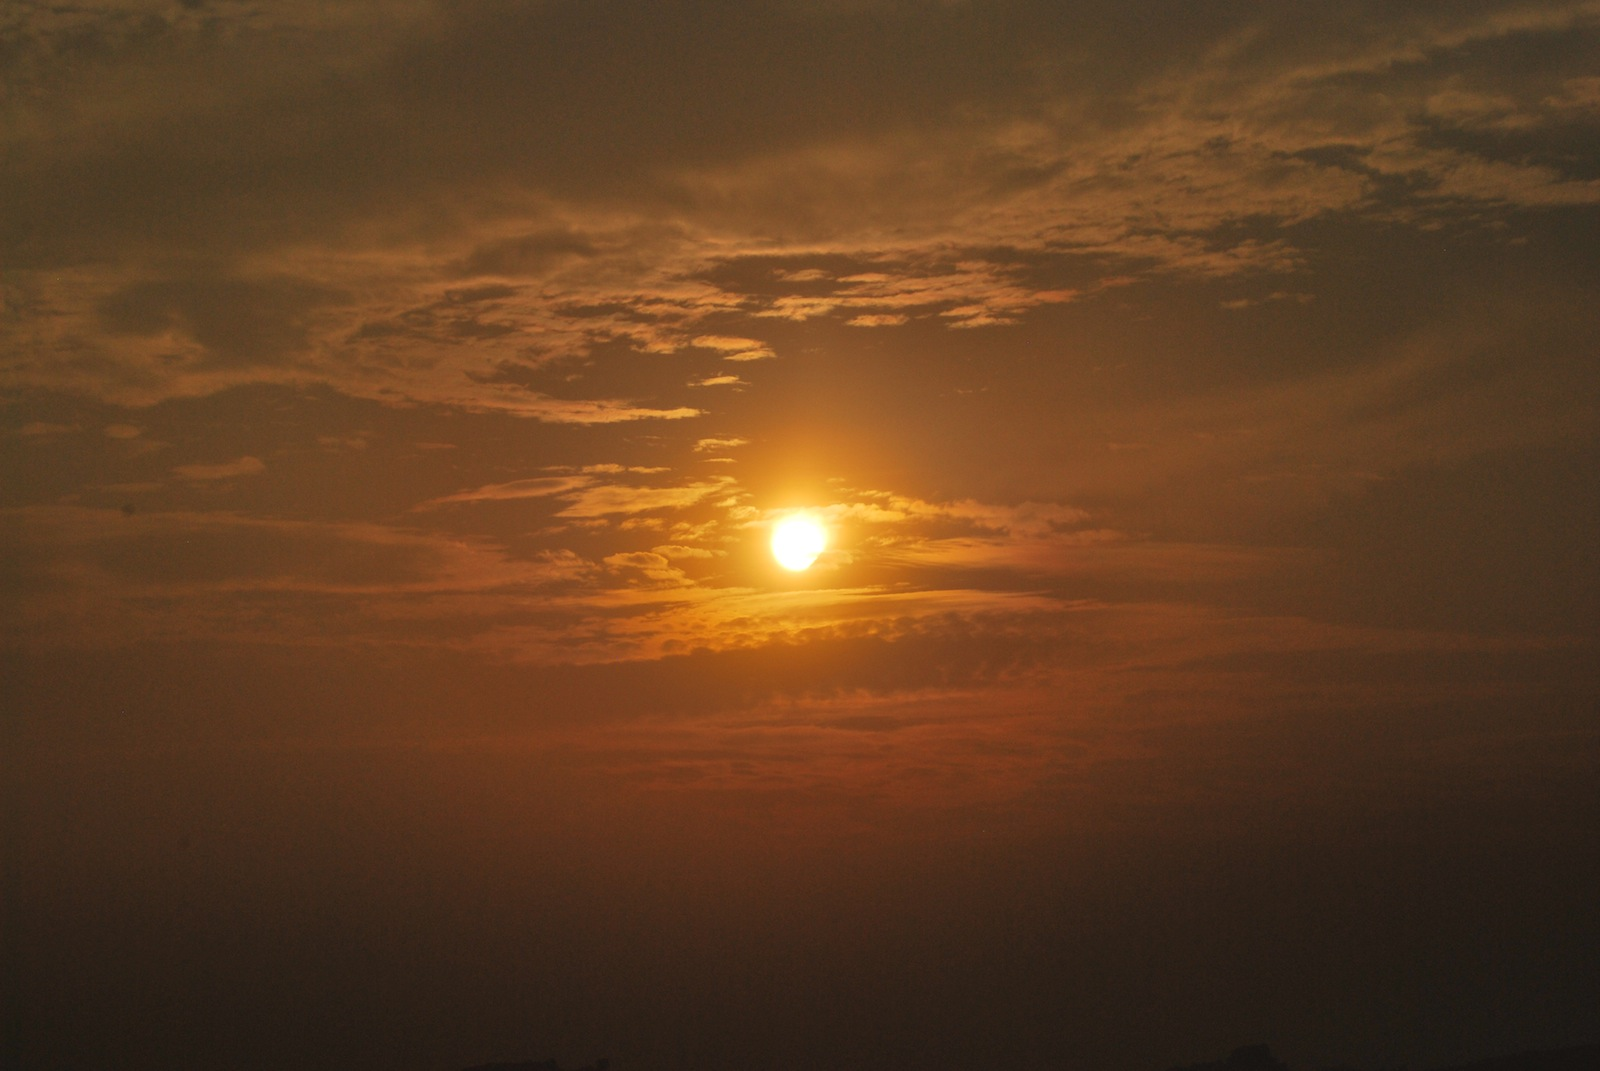 Sun at 4 pm - from Hemakuta Hills